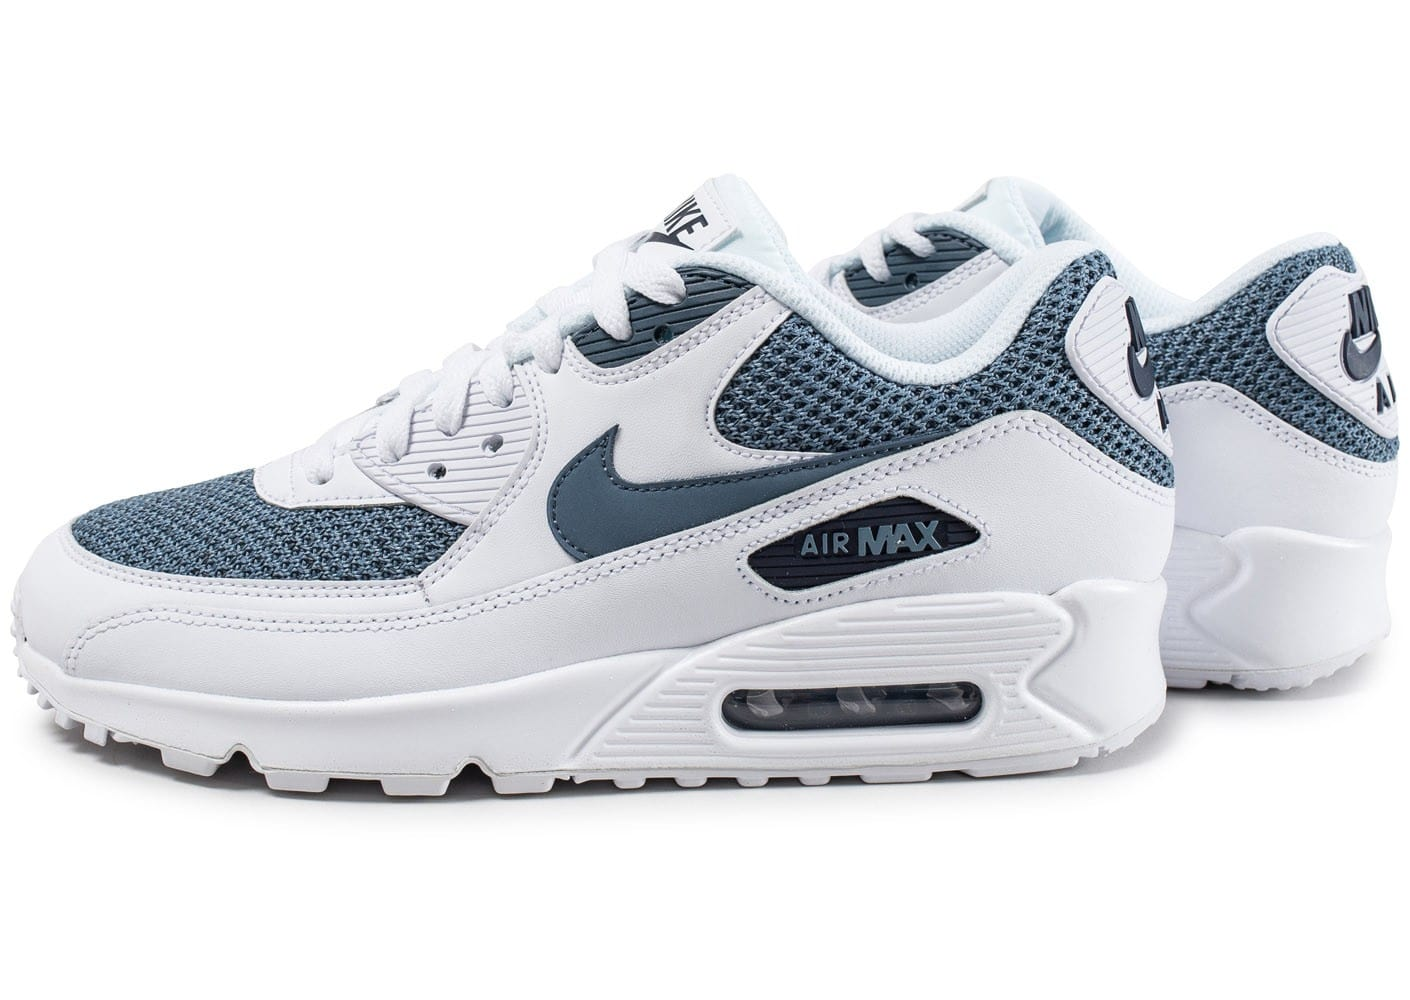 nike air max 90 essential blanche et bleue chaussures baskets homme chausport. Black Bedroom Furniture Sets. Home Design Ideas